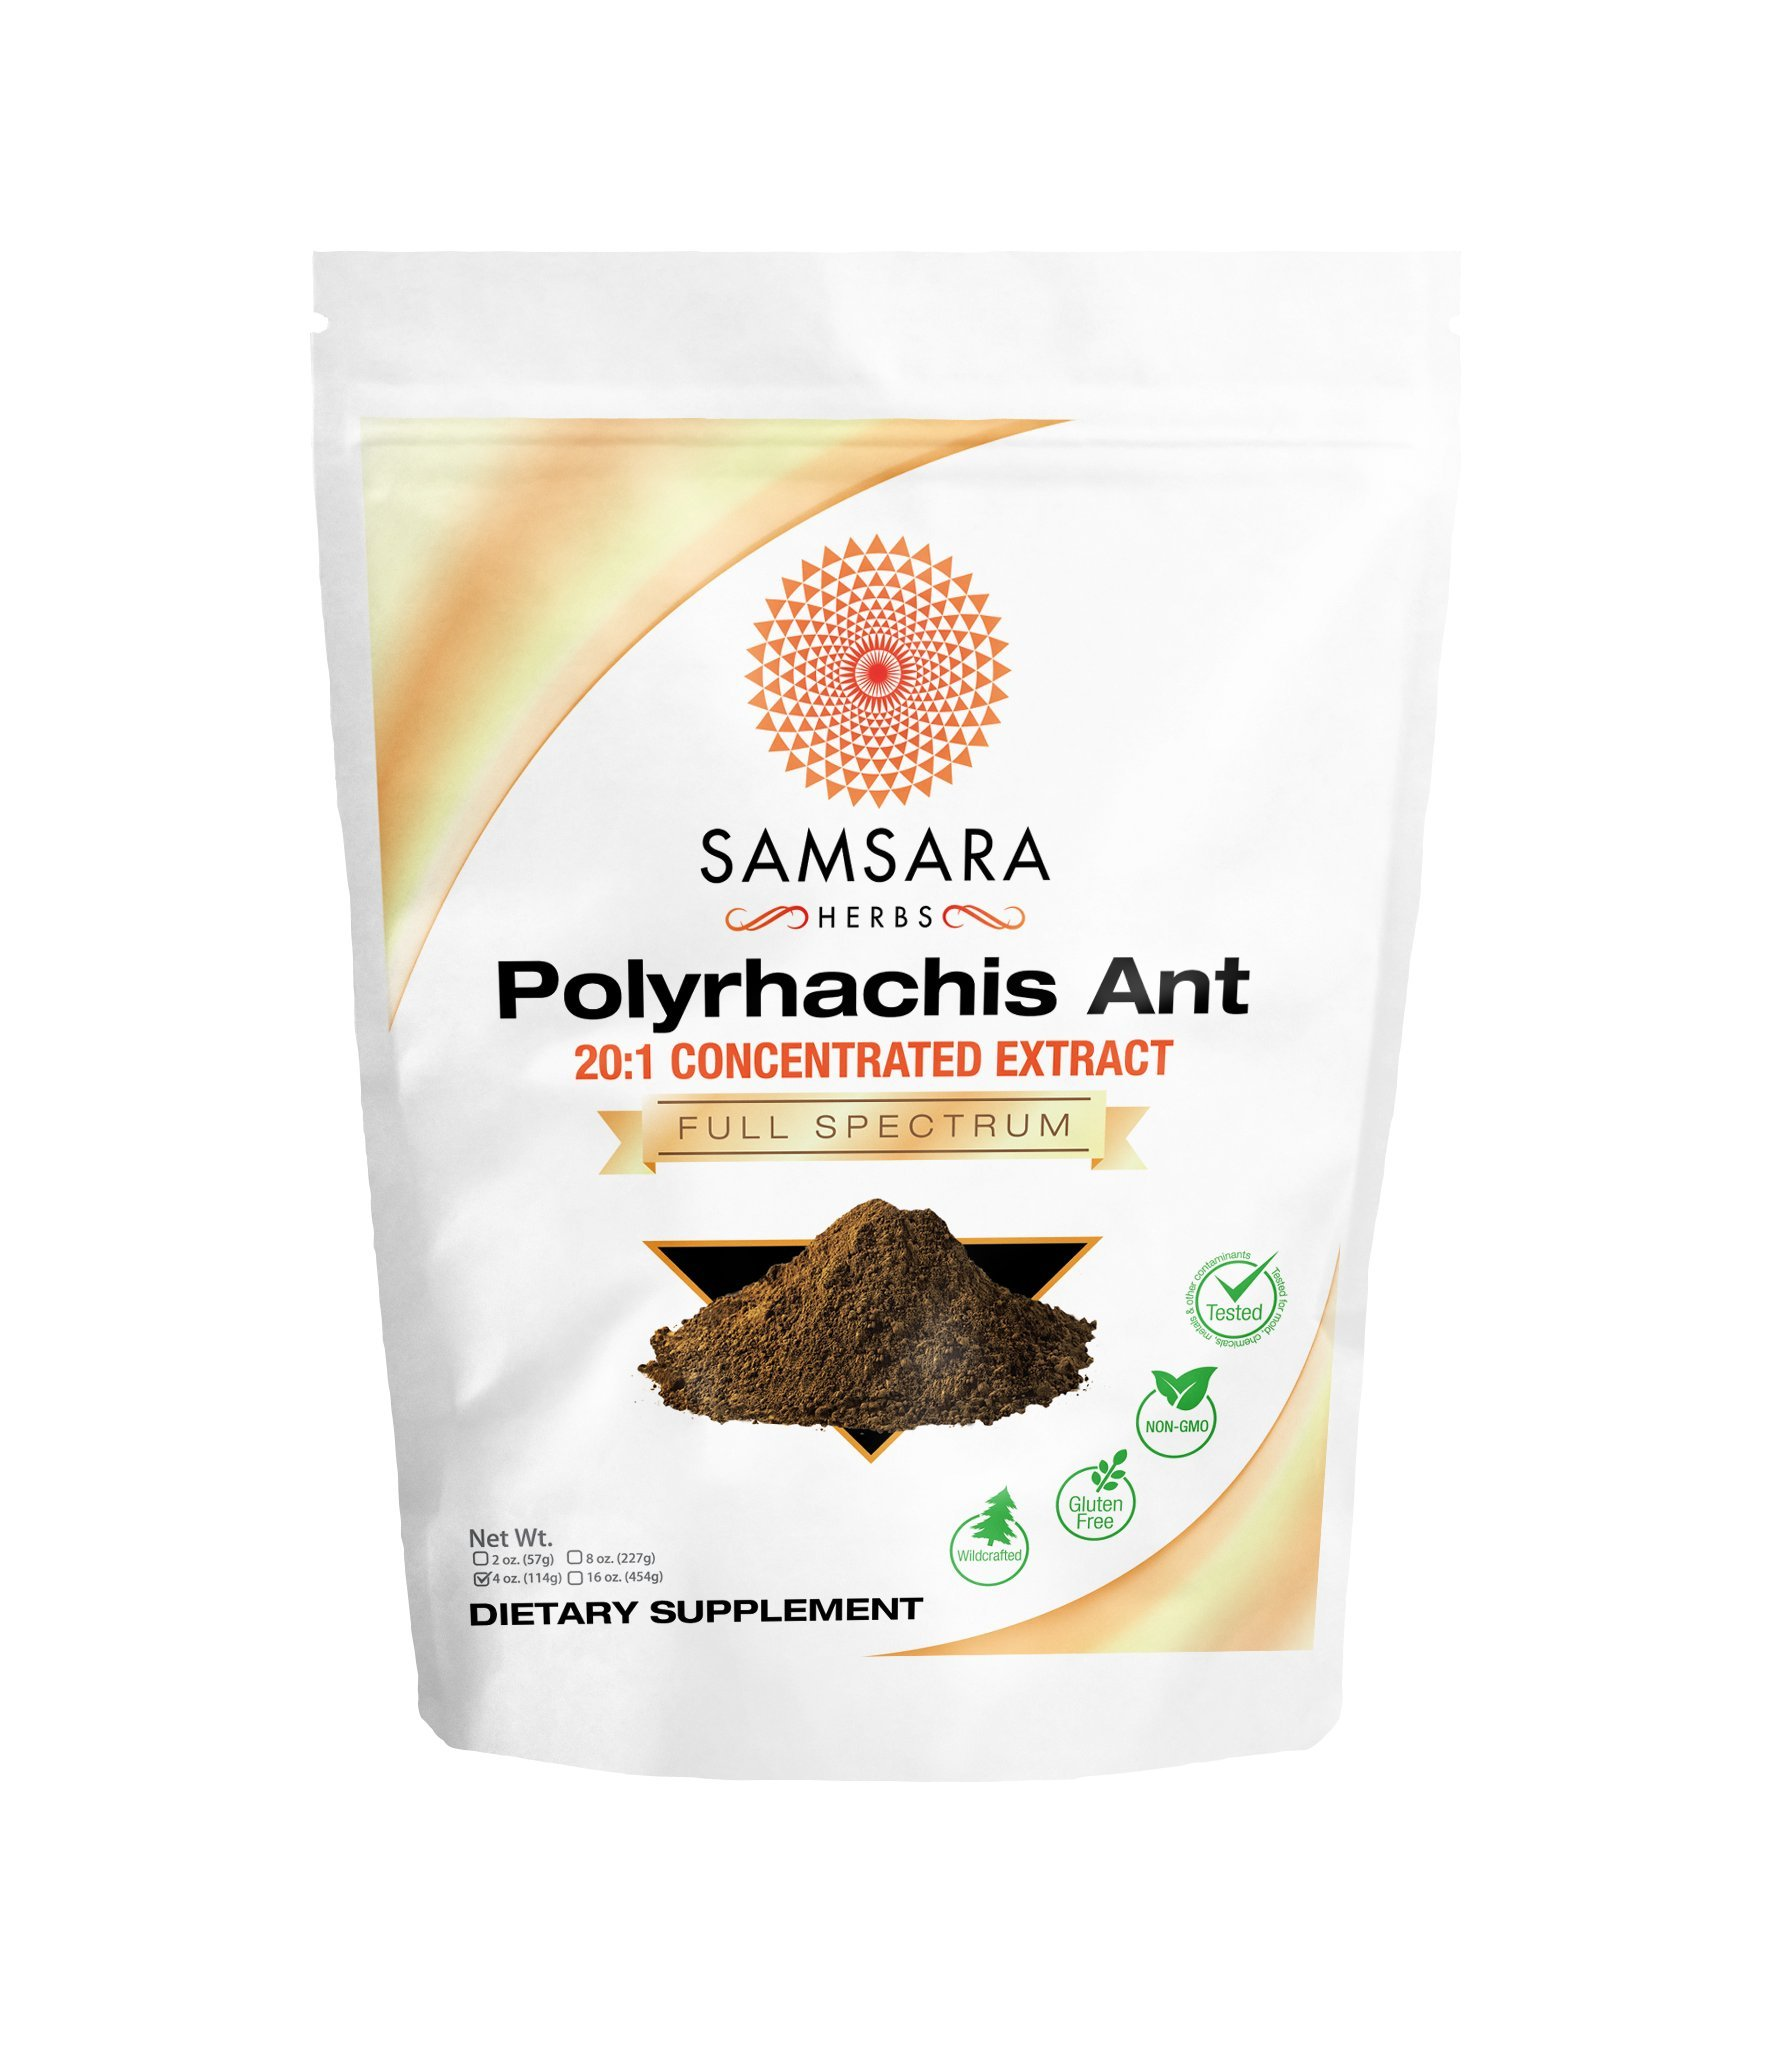 Samsara Herbs Polyrhachis Ant Extract Powder - 20:1 Concentrated Extract (4oz)